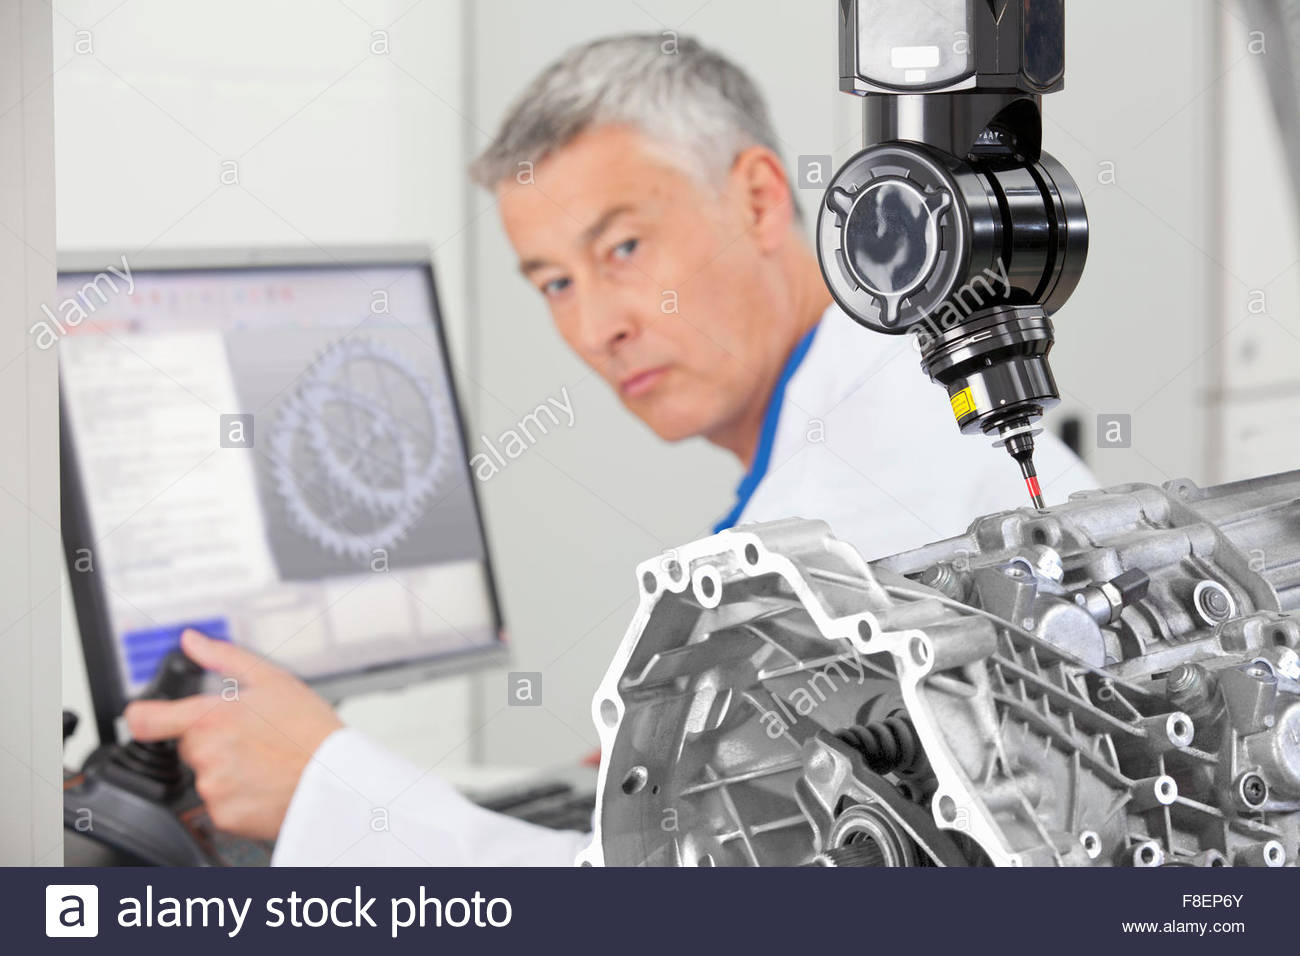 Engineer working at computer and turning toward probe scanning engine block - Stock Image